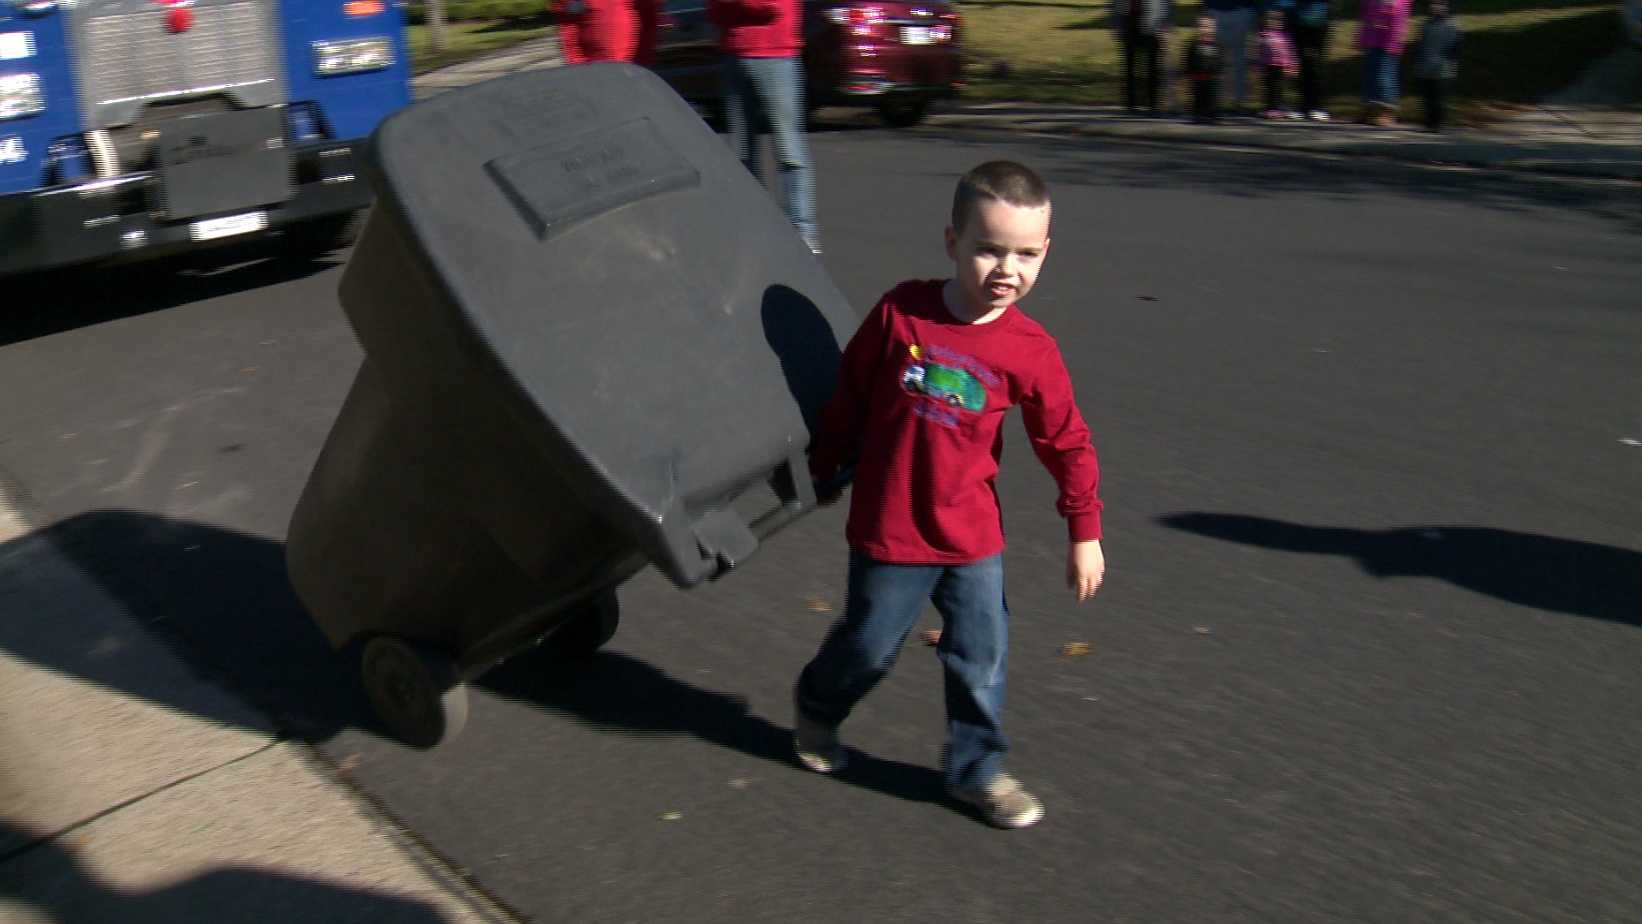 Jobiah Wells, 4, moves a trash can in his Folsom neighborhood on Friday, Dec. 25, 2015. The boy asked for four new trash bins for Christmas, and the city of Folsom stepped up to grant his wish.